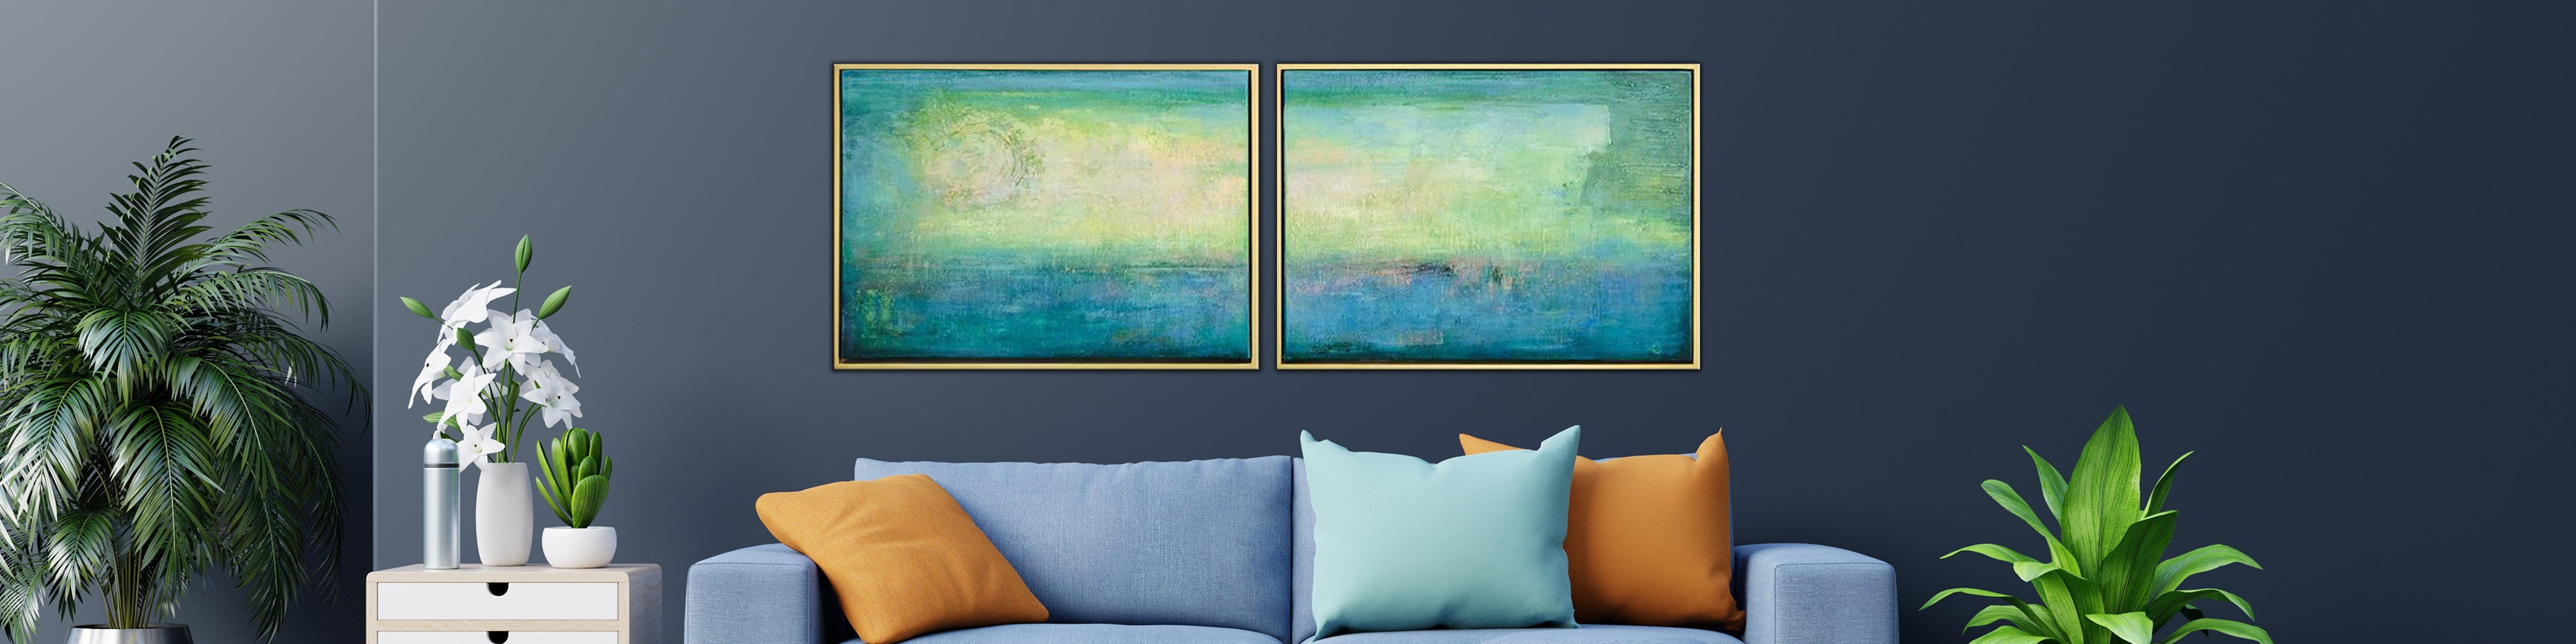 How to decorate a living room with abstract canvas